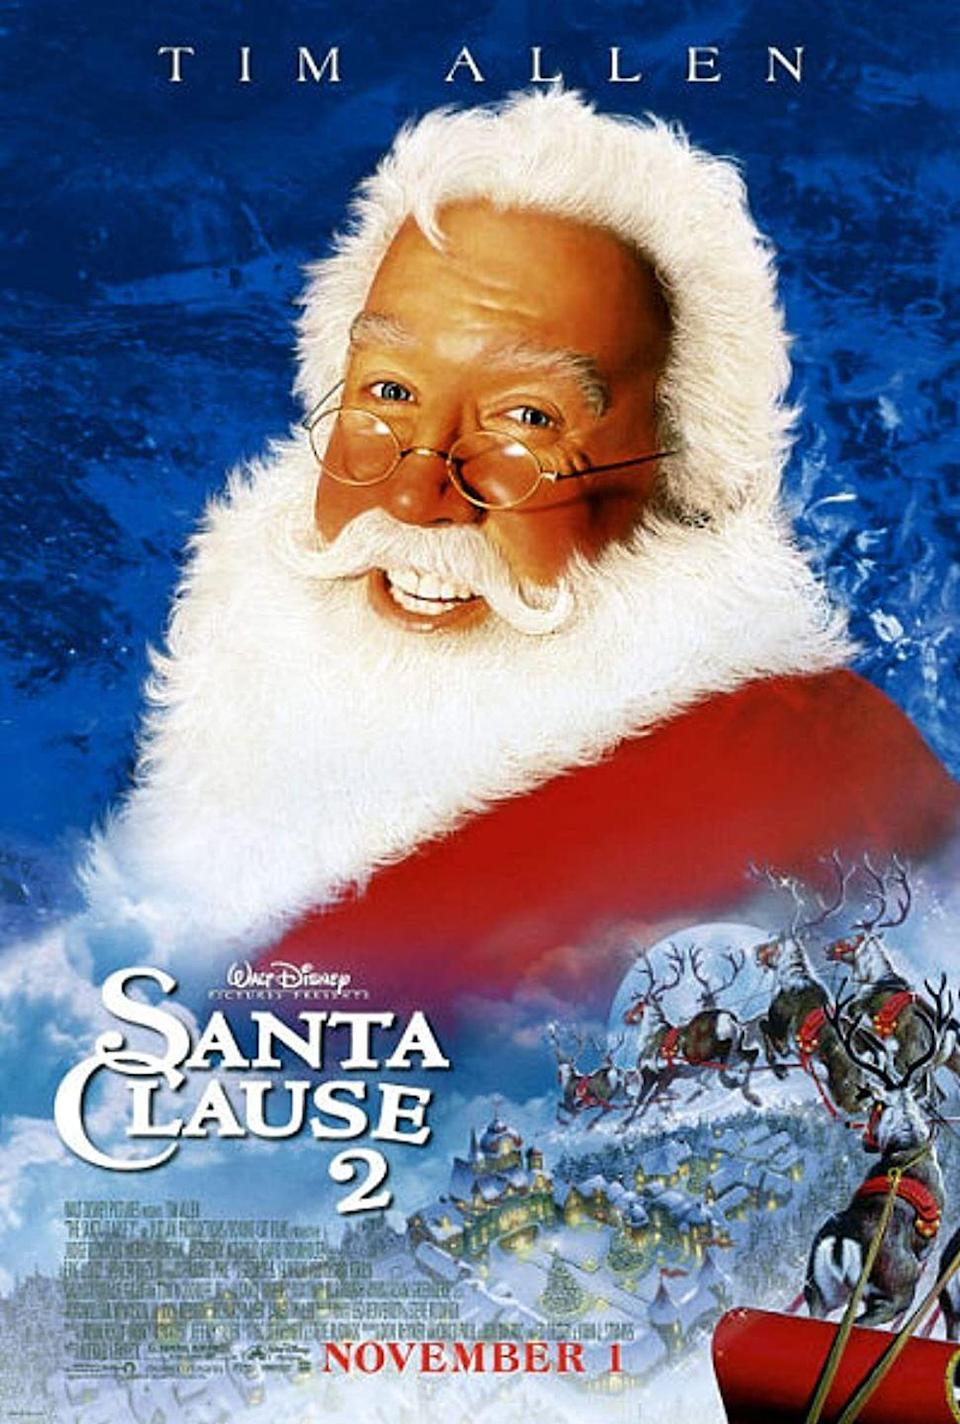 """<p>If you loved the first Santa Clause movie, then you'll be sure to make your list and check it twice to watch the heartwarming sequel which follows Santa in his search for a Mrs. Claus.</p><p><a class=""""link rapid-noclick-resp"""" href=""""https://www.amazon.com/Santa-Clause-2-Tim-Allen/dp/B005BW8MP2?tag=syn-yahoo-20&ascsubtag=%5Bartid%7C10055.g.1315%5Bsrc%7Cyahoo-us"""" rel=""""nofollow noopener"""" target=""""_blank"""" data-ylk=""""slk:WATCH NOW"""">WATCH NOW</a></p>"""